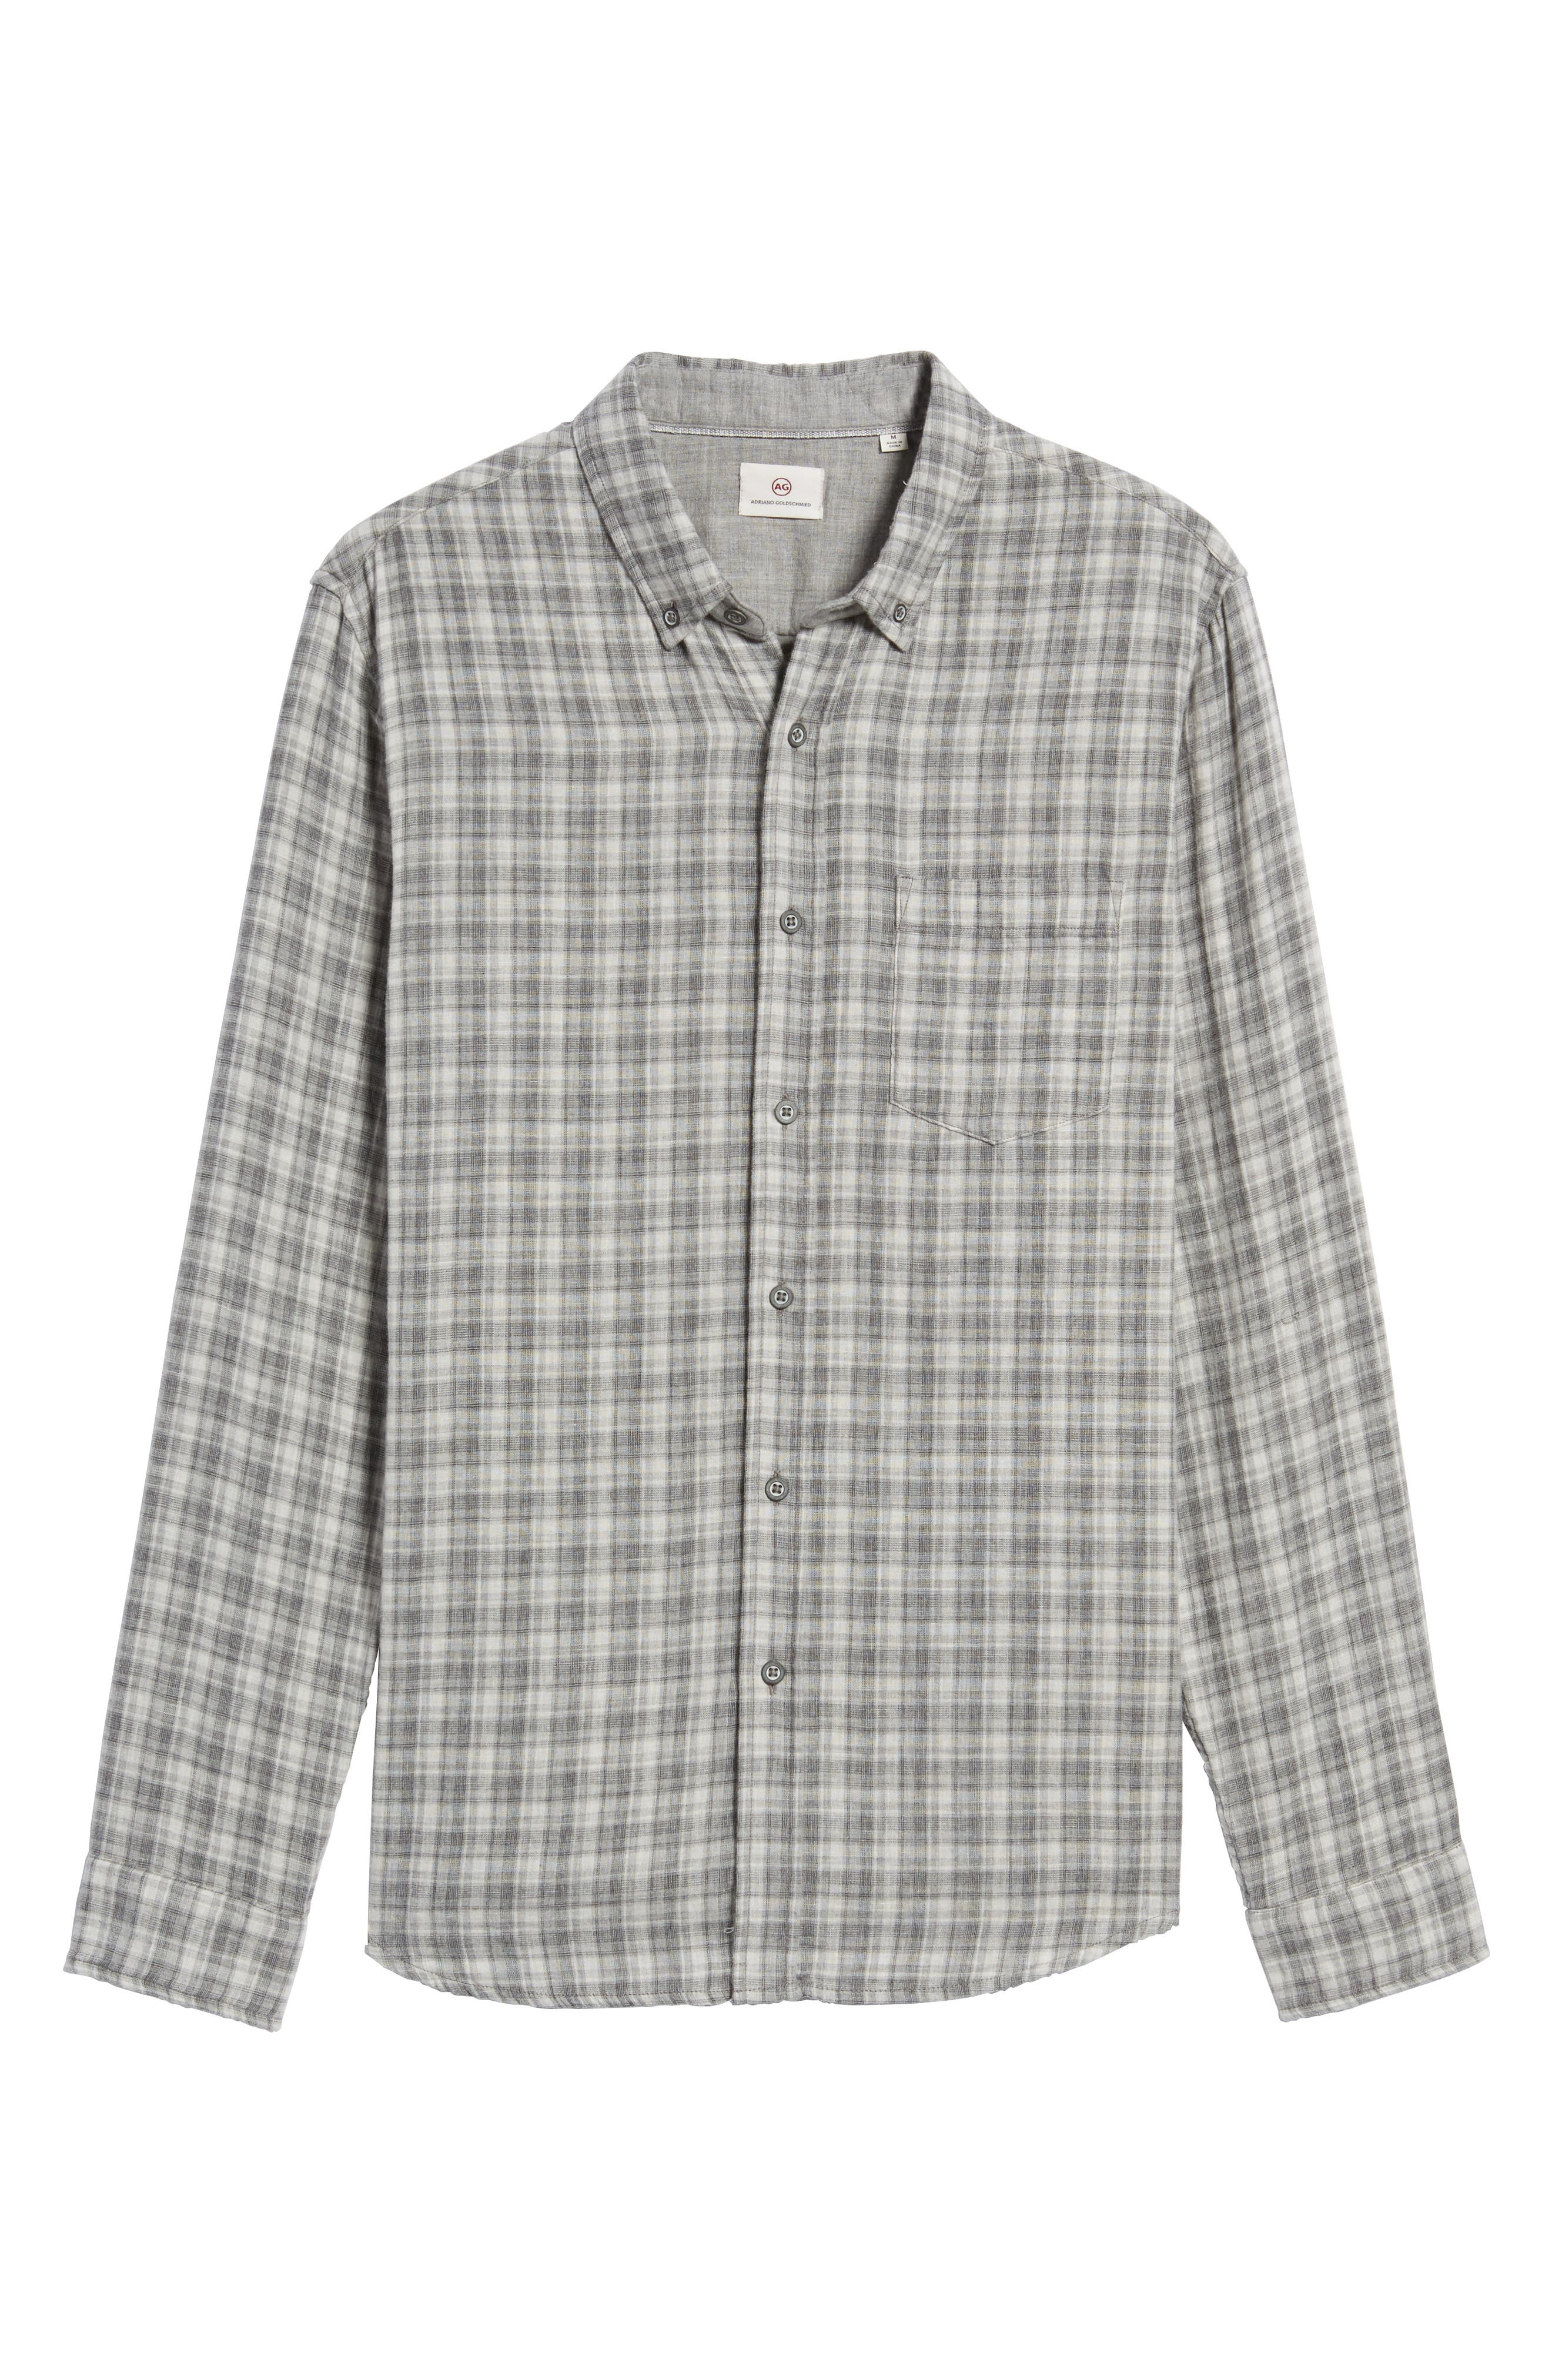 Grady Plaid Sport Shirt,                             Alternate thumbnail 5, color,                             Dlp Heather Grey/ White